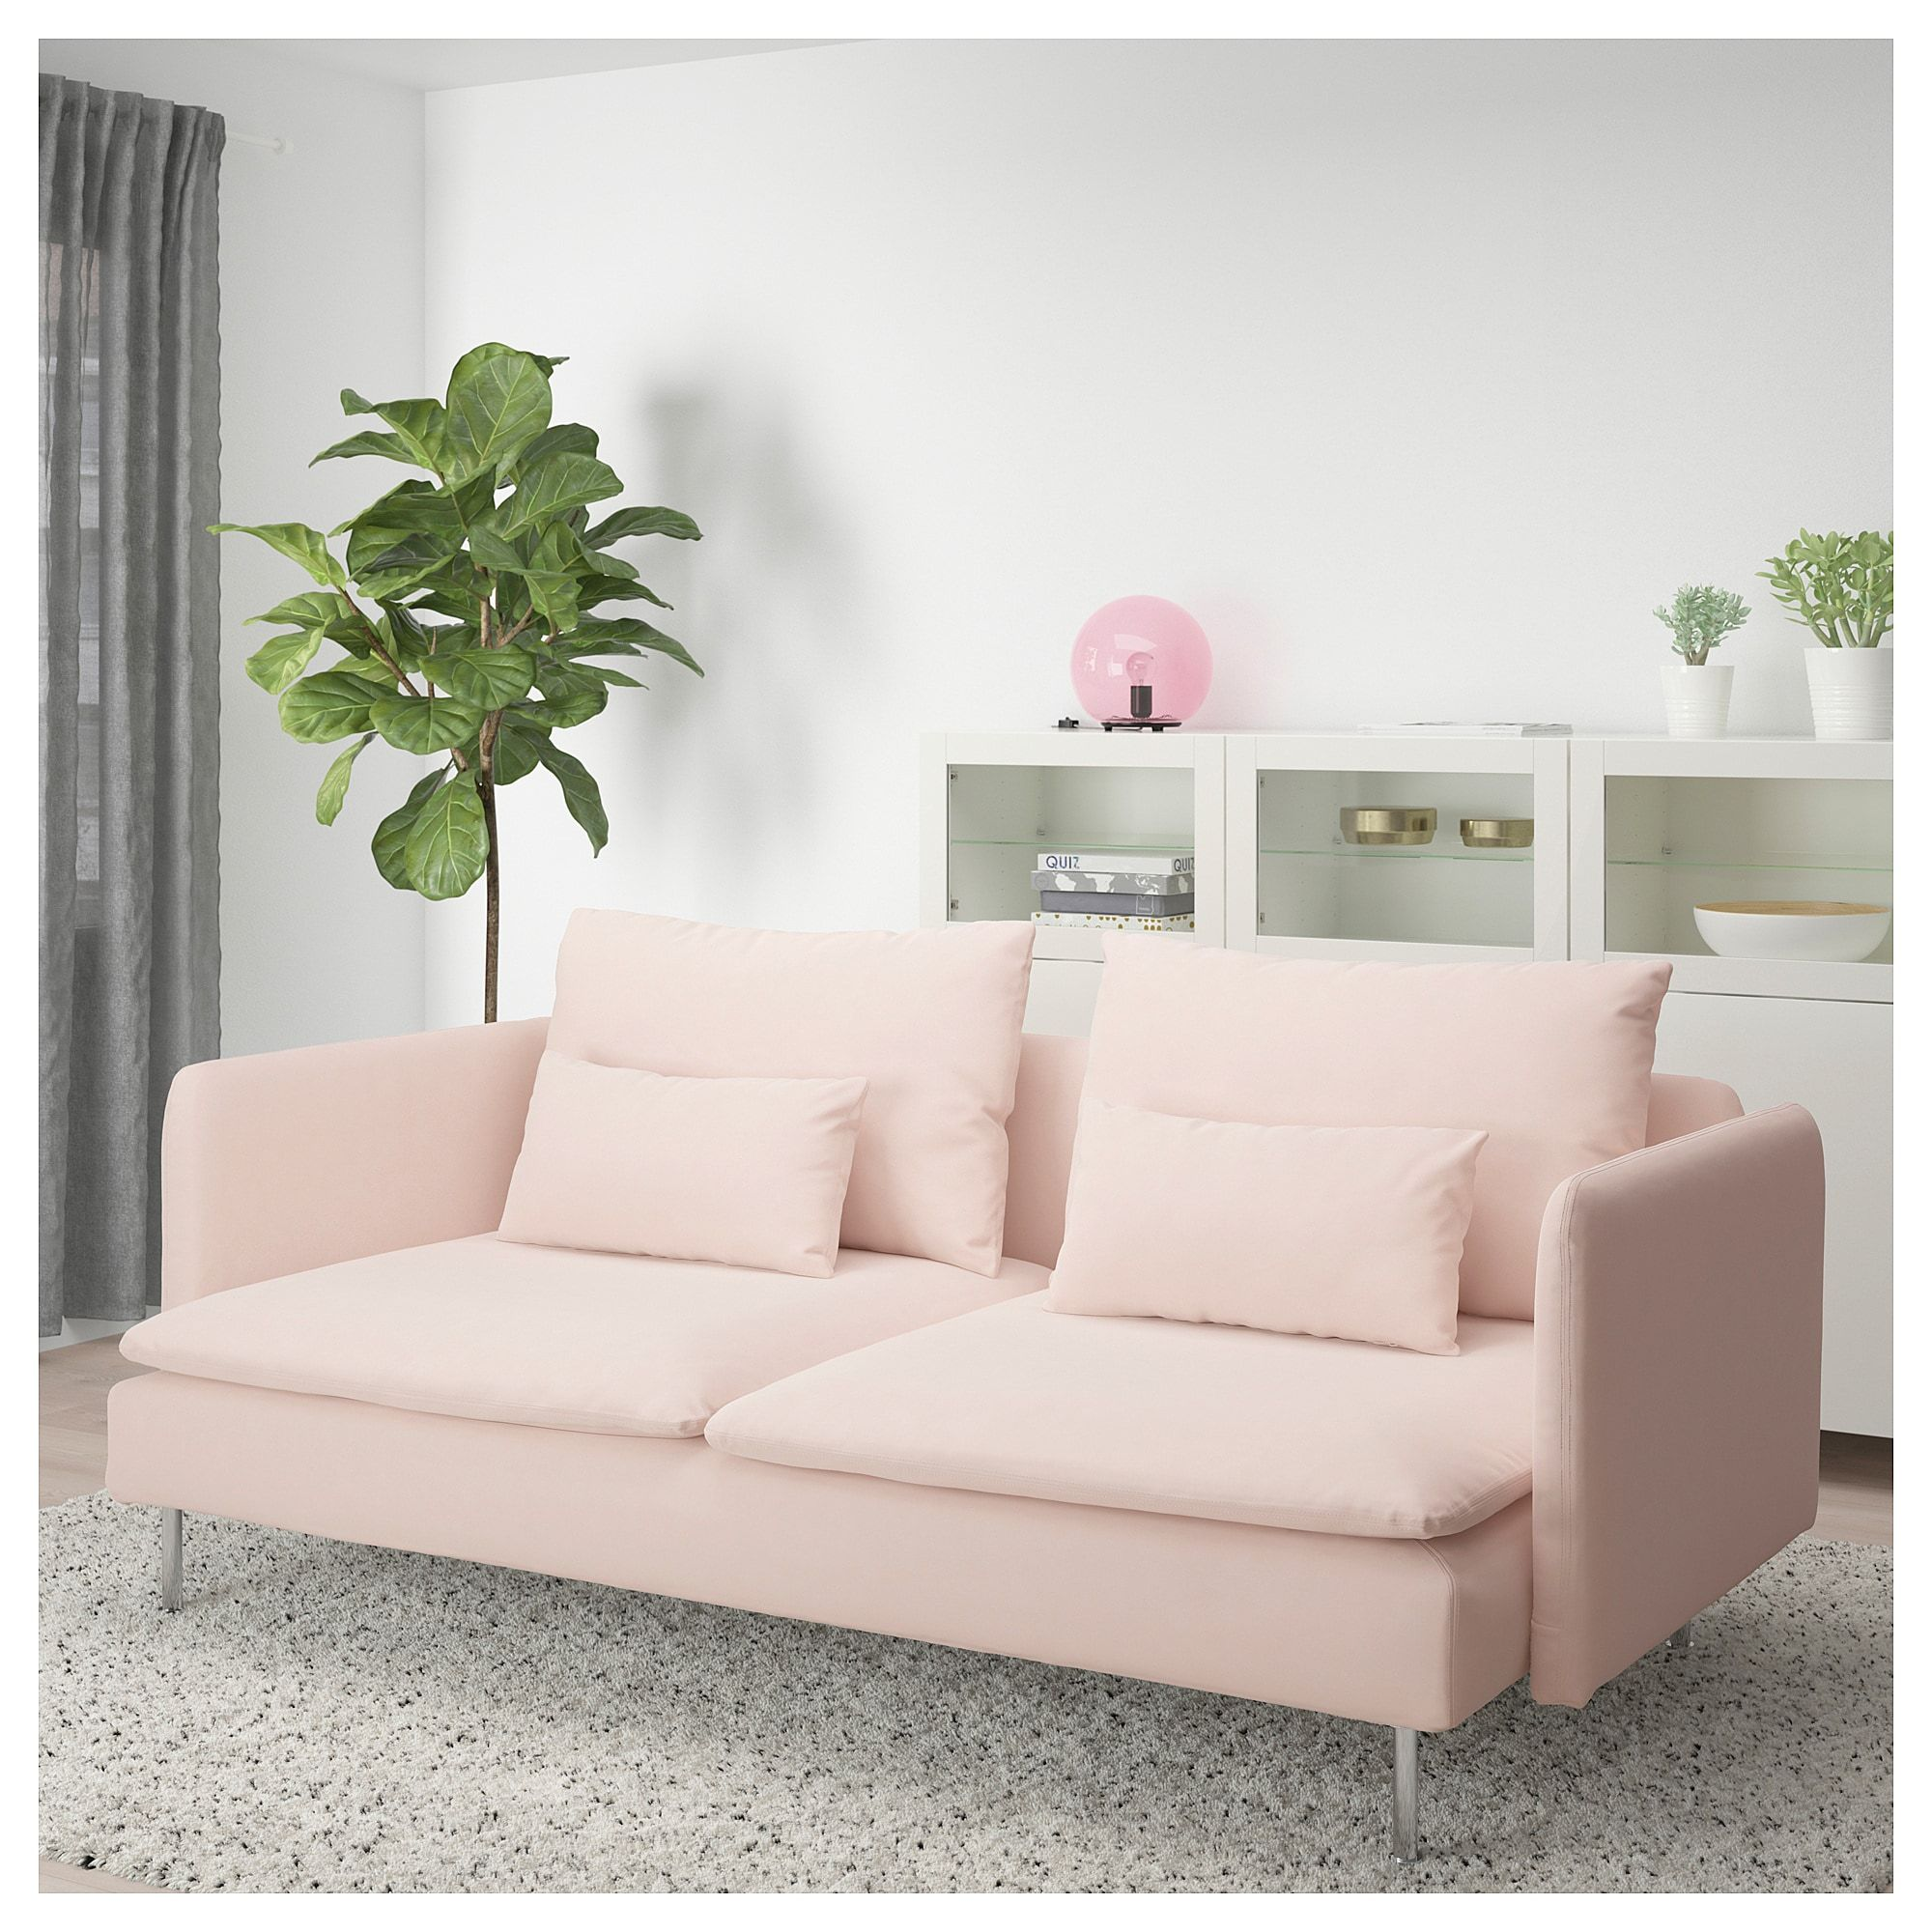 SÖDERHAMN Sofa - Samsta light pink | Sofa, Ikea ...